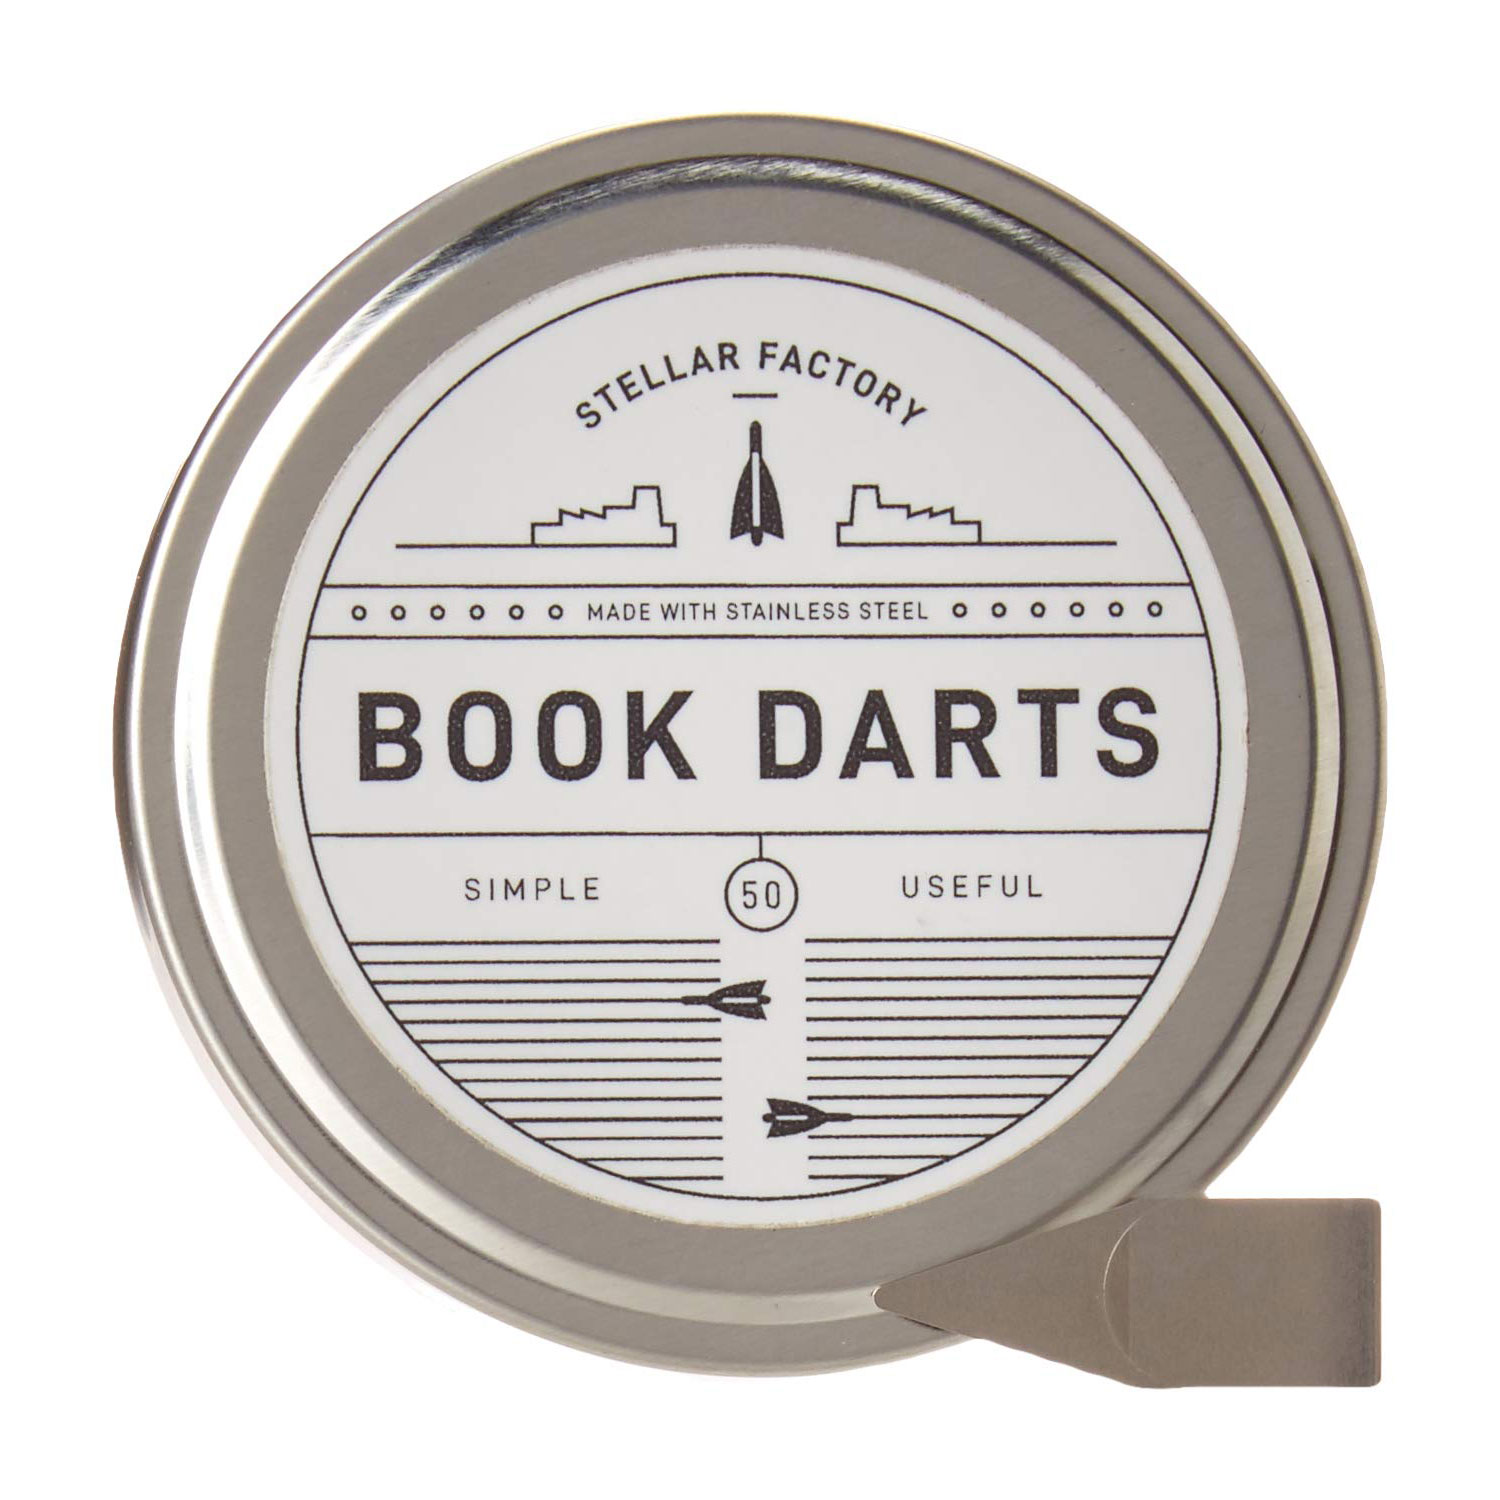 book-darts-sf.jpg